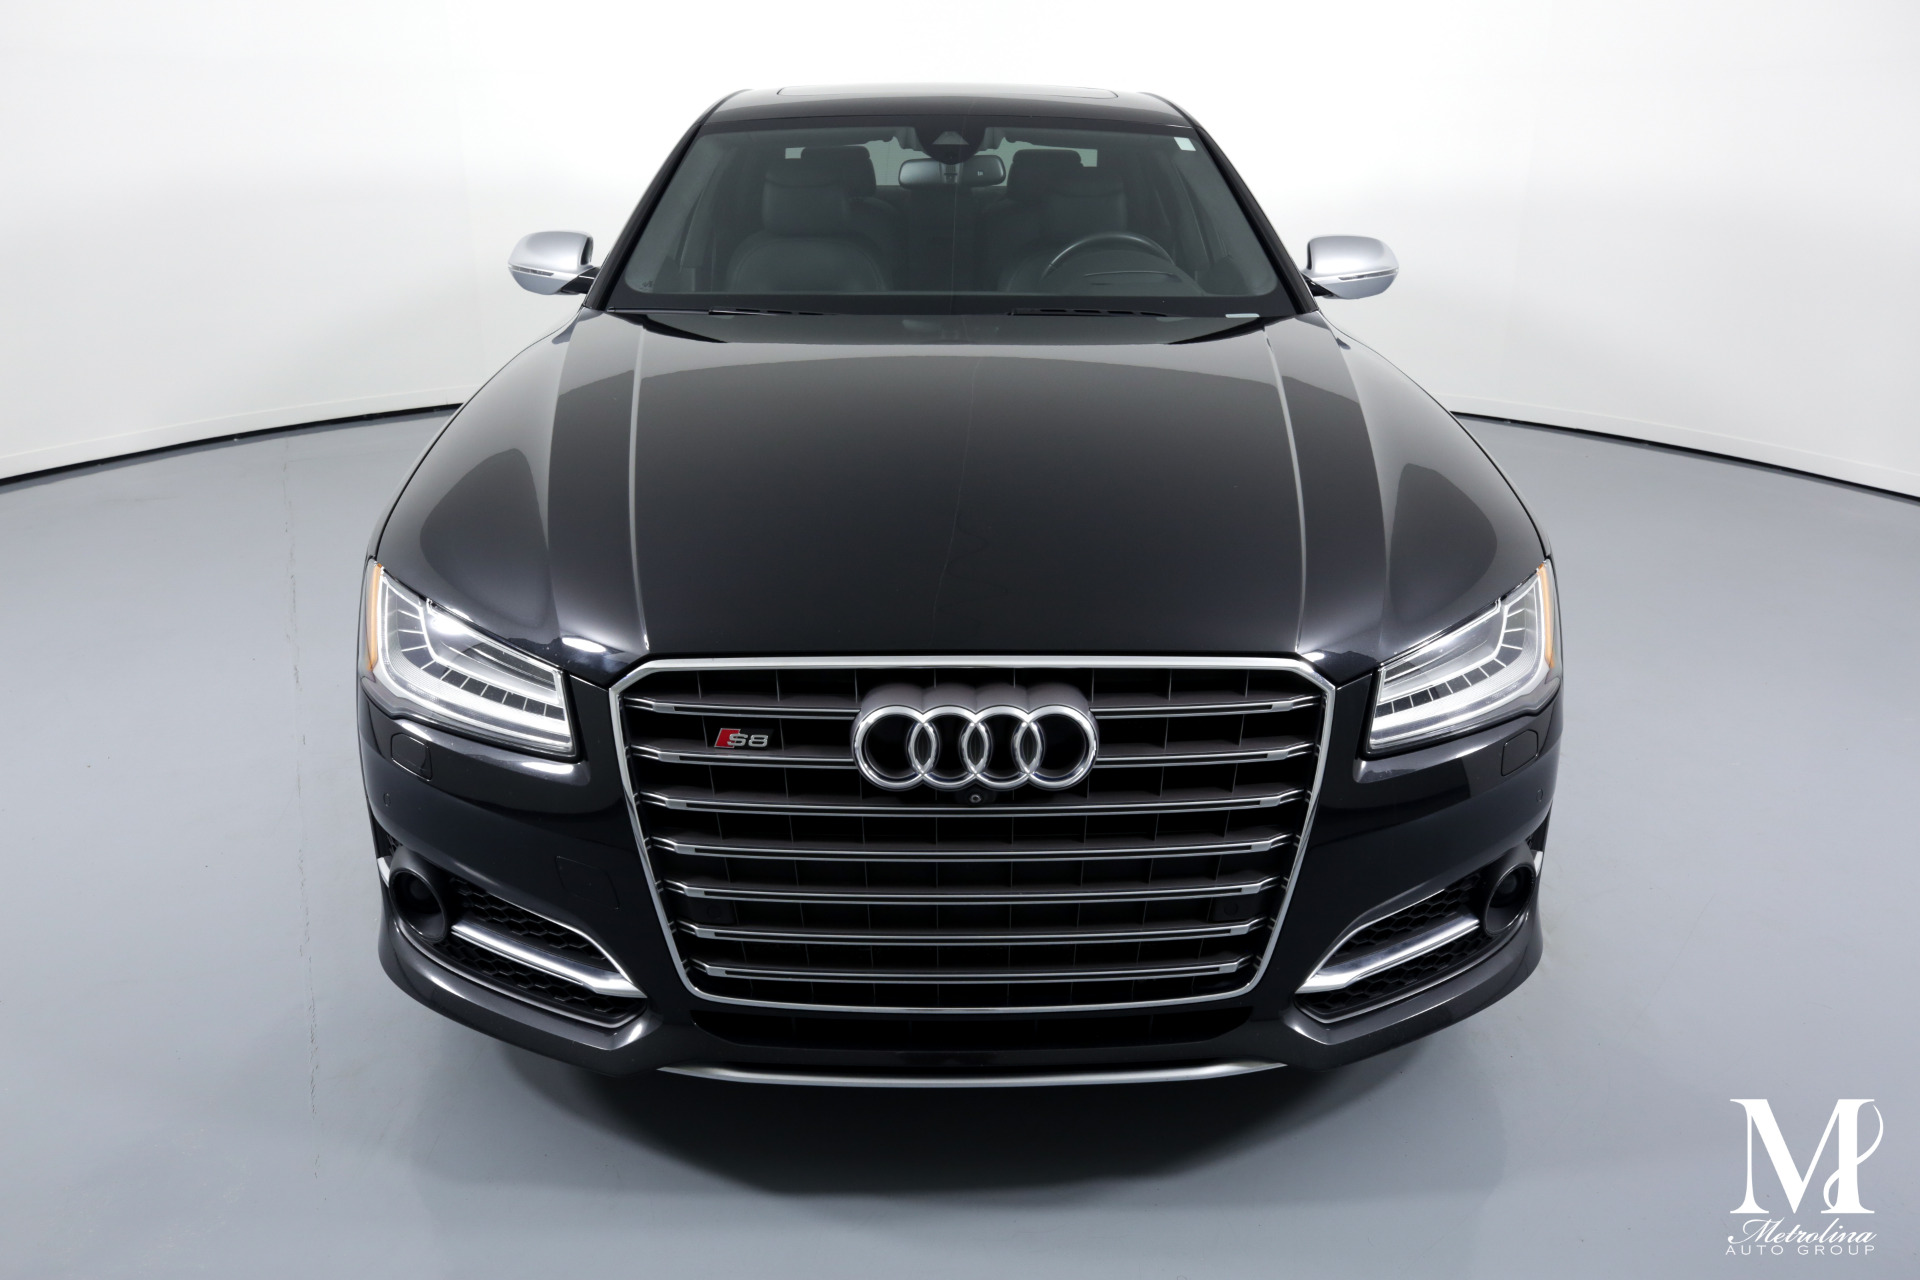 Used 2015 Audi S8 4.0T quattro for sale $39,996 at Metrolina Auto Group in Charlotte NC 28217 - 3